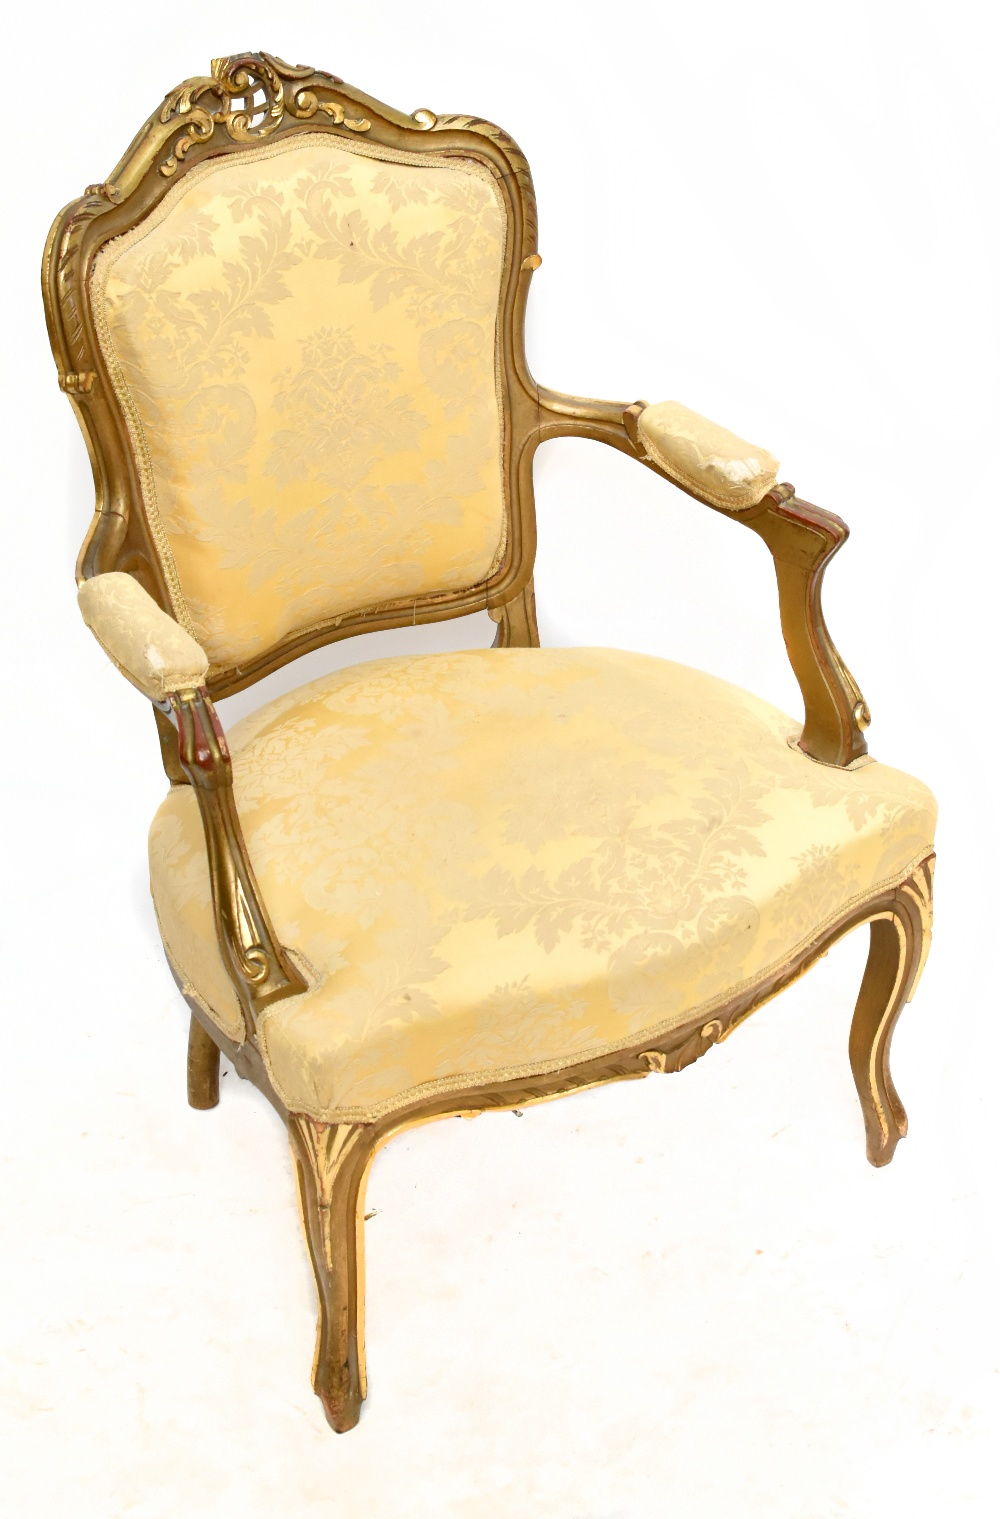 An early 20th century French fauteuil with gilt heightened frame, padded back, arms and seat and